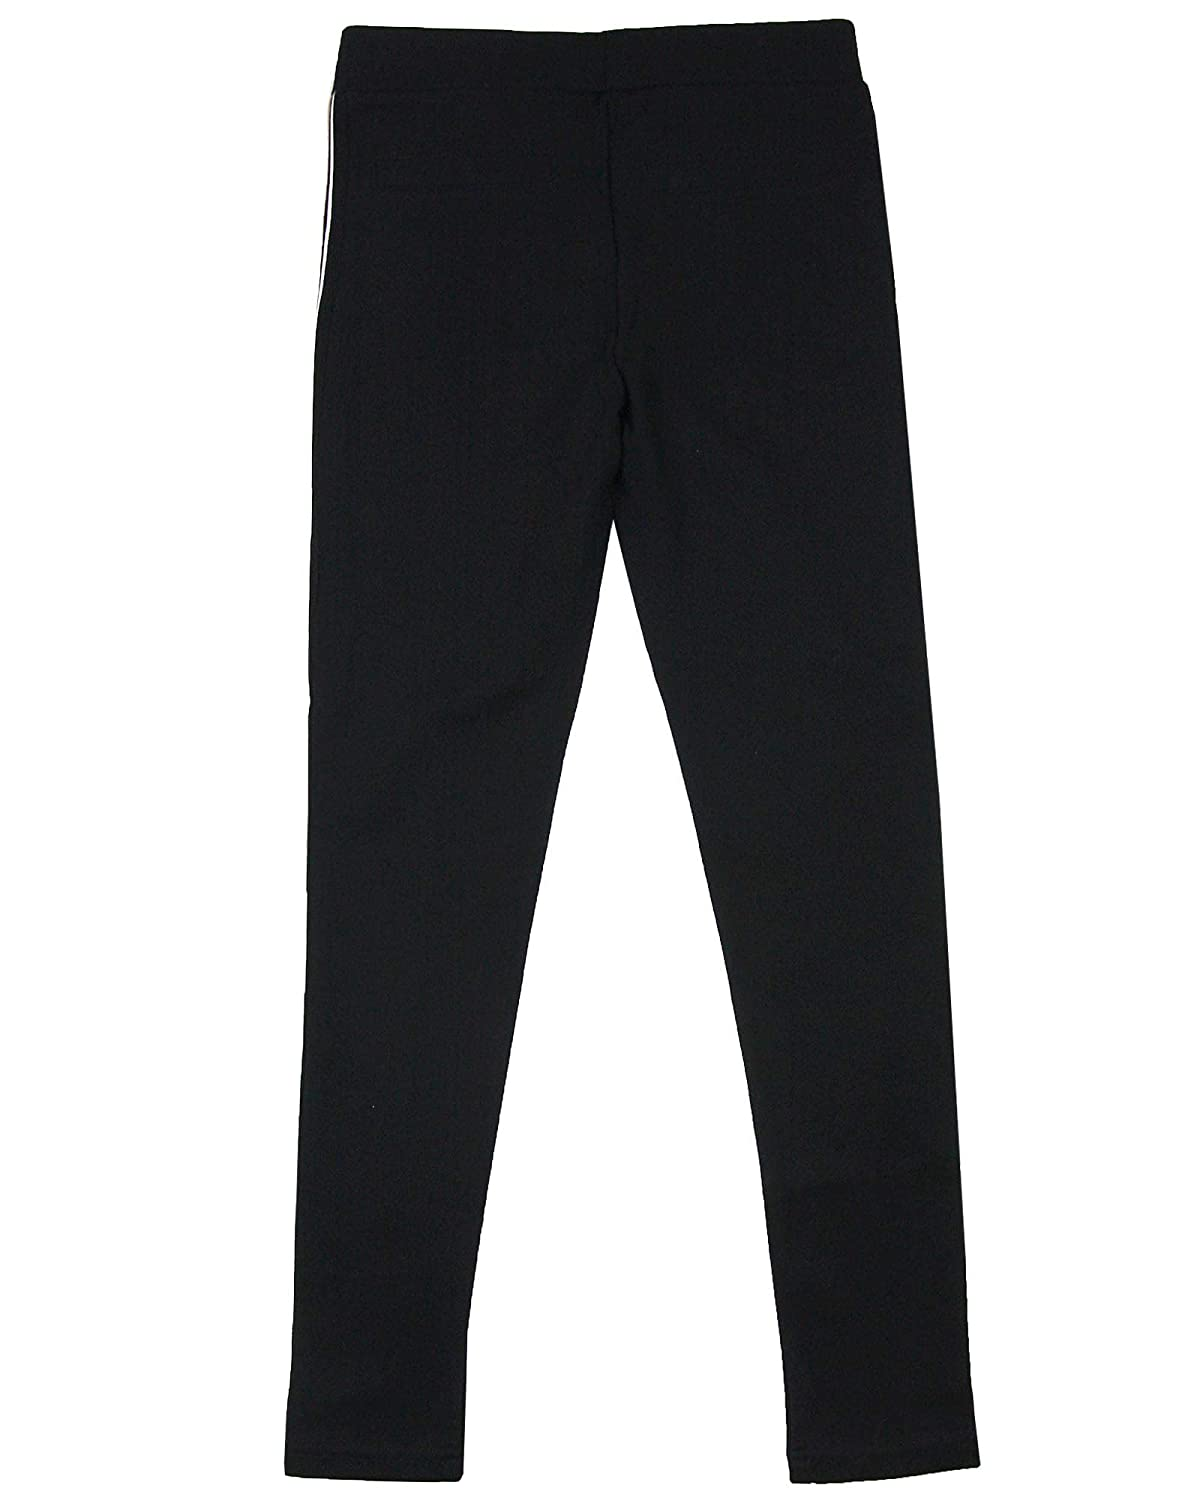 NoBell Junior Girls Pants with Side Stripes Sizes 10-16